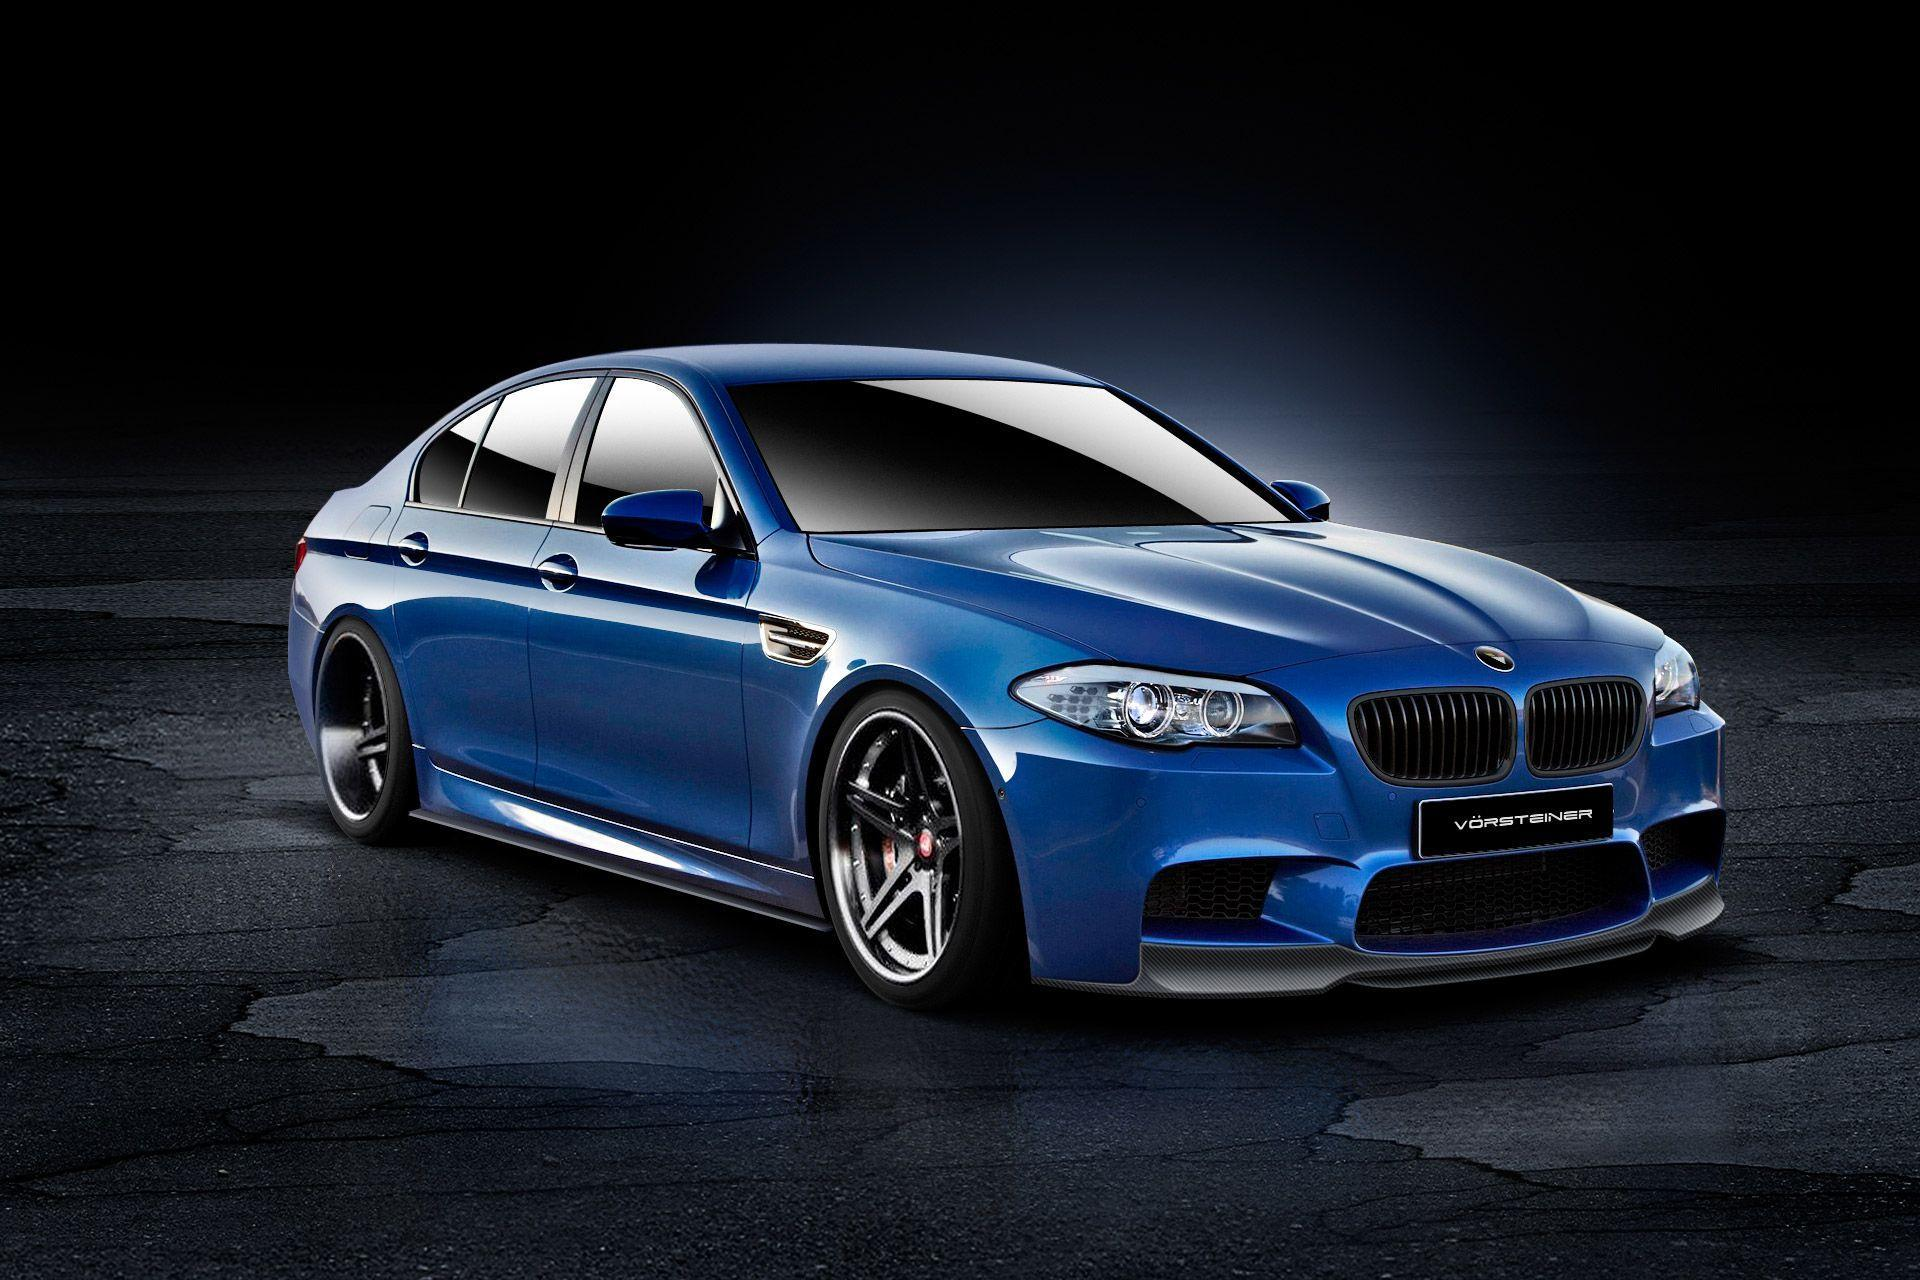 2013 Vorsteiner BMW M5 Sedan tuning wallpapers